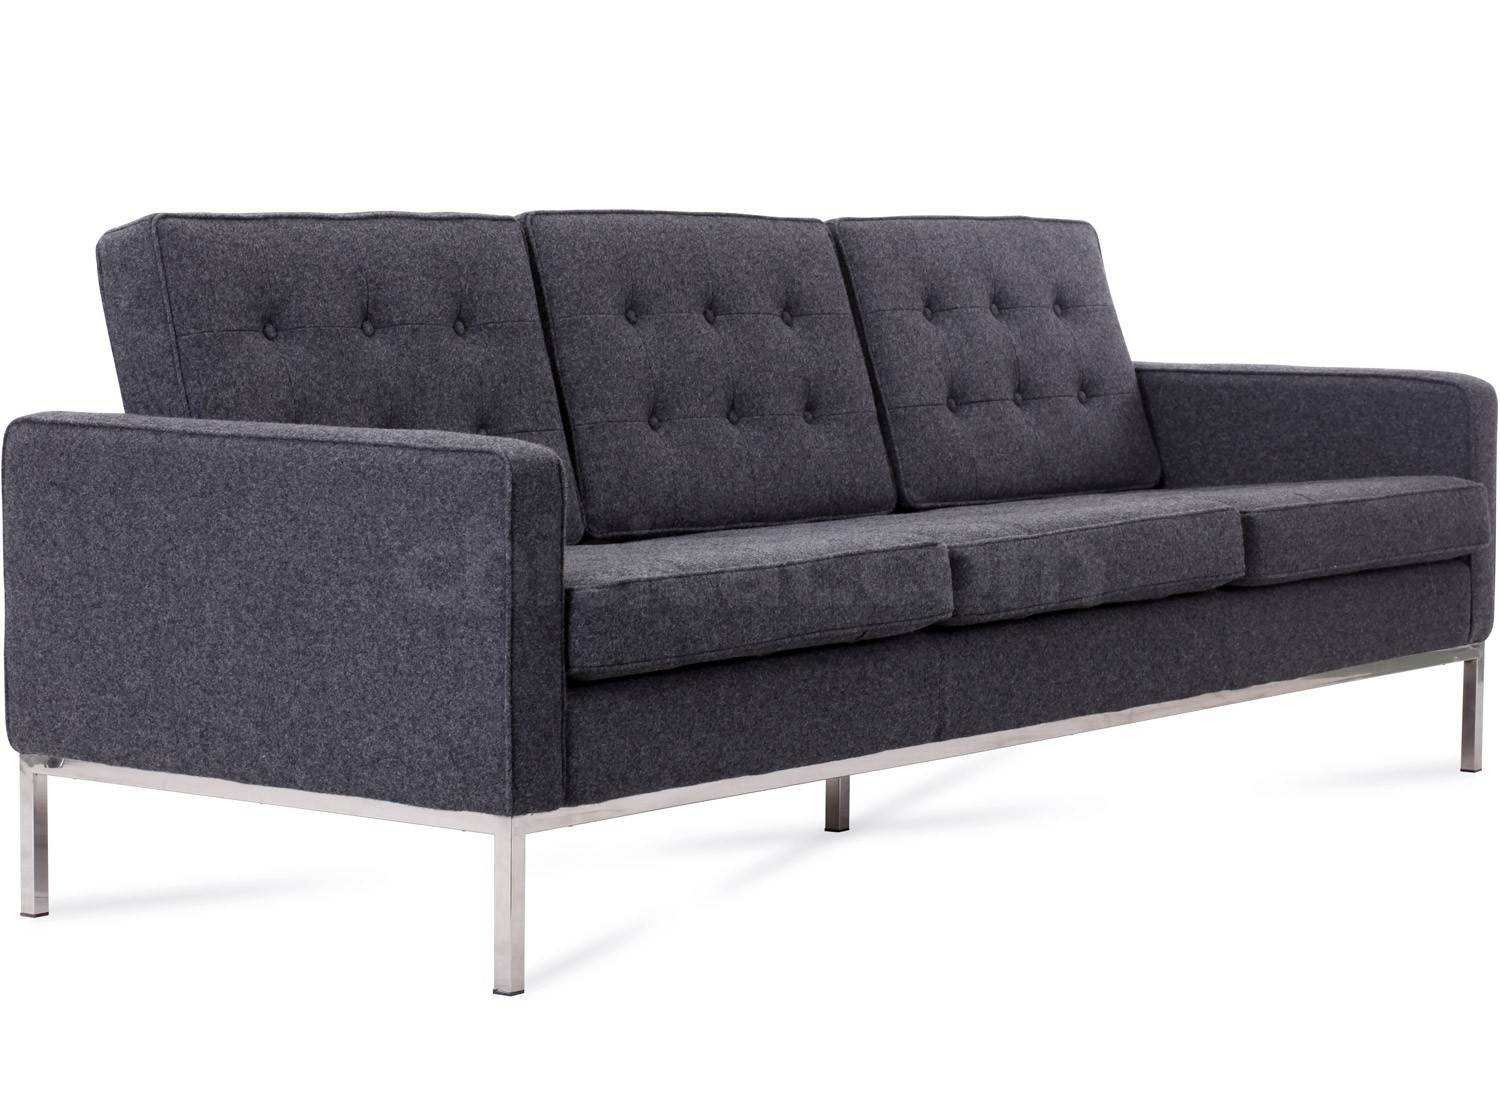 Florence Knoll Sofa 3 Seater Wool (Platinum Replica) In Knoll Sofas (View 6 of 15)